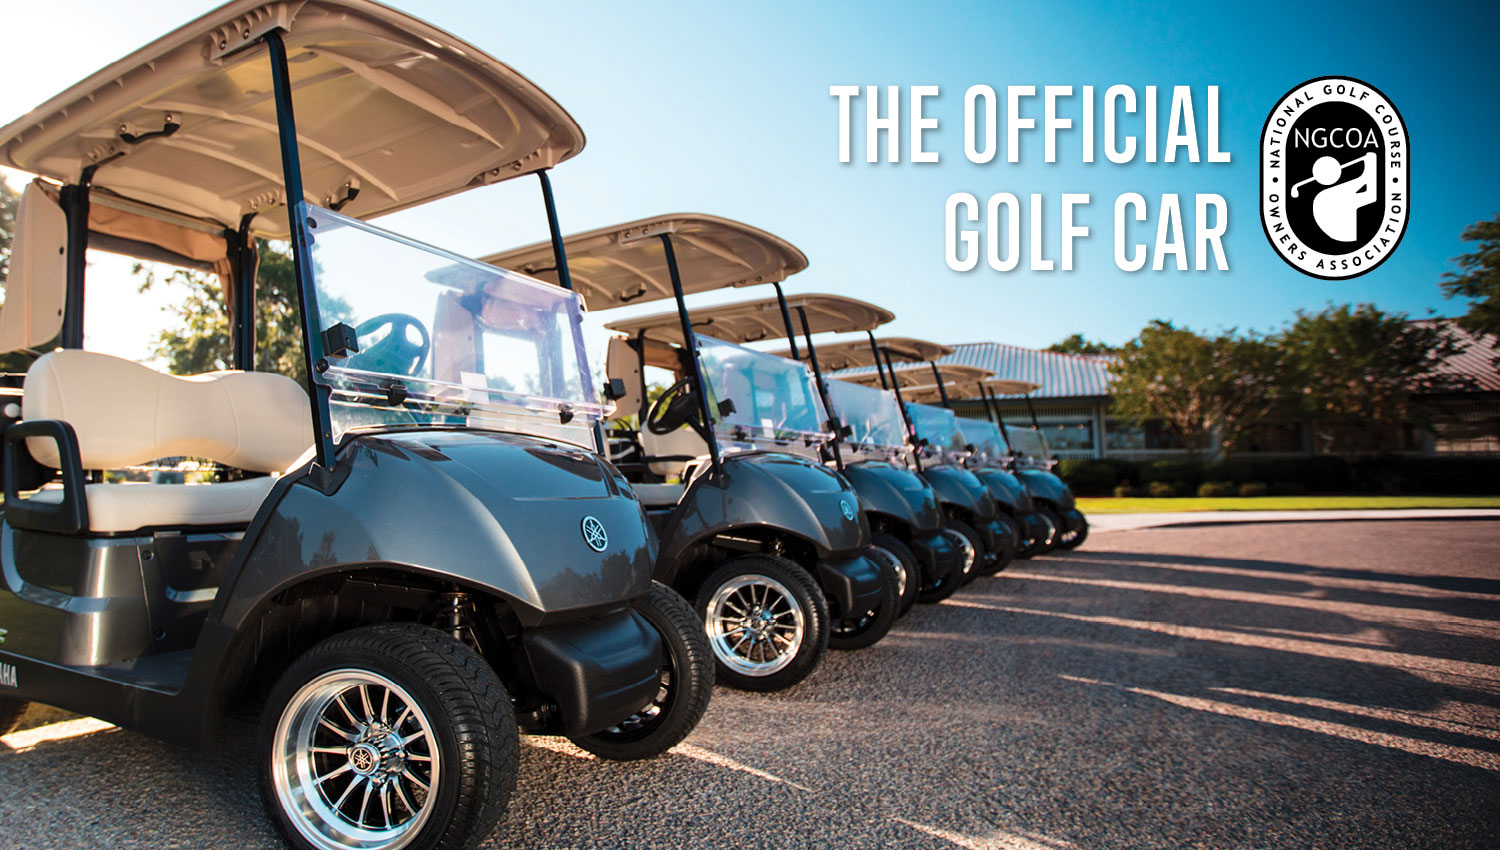 Golf Cars | Golf Carts | Yamaha Golf-Cars - Yamaha Golf Car Club Car Golf Cart Parts Catalogs on club car accessories catalog, club car transporter 4, club car parts catalog, club car precedent rain enclosure, golf cart accessories catalog, ez go accessories catalog, club car lift kit 2, yamaha golf cart parts catalog,